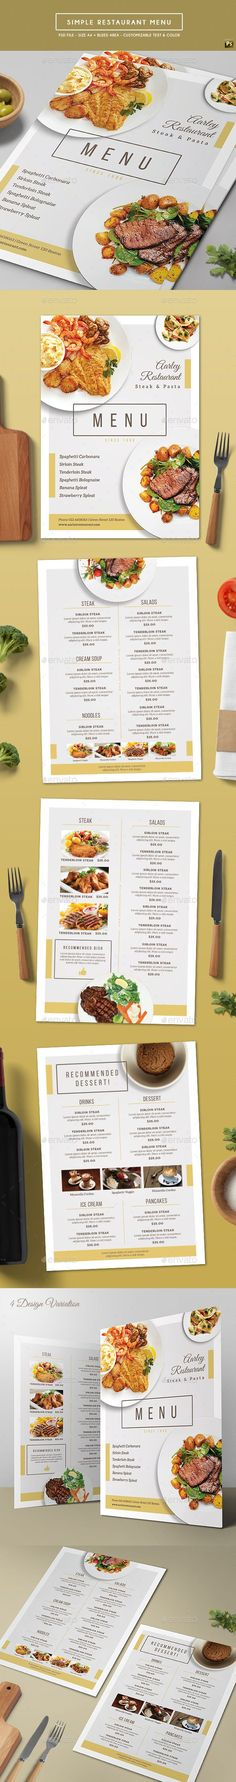 Simple Restaurant Menu — Photoshop PSD #bifold #poster • Download ➝ https://graphicriver.net/item/simple-restaurant-menu/19201609?ref=pxcr